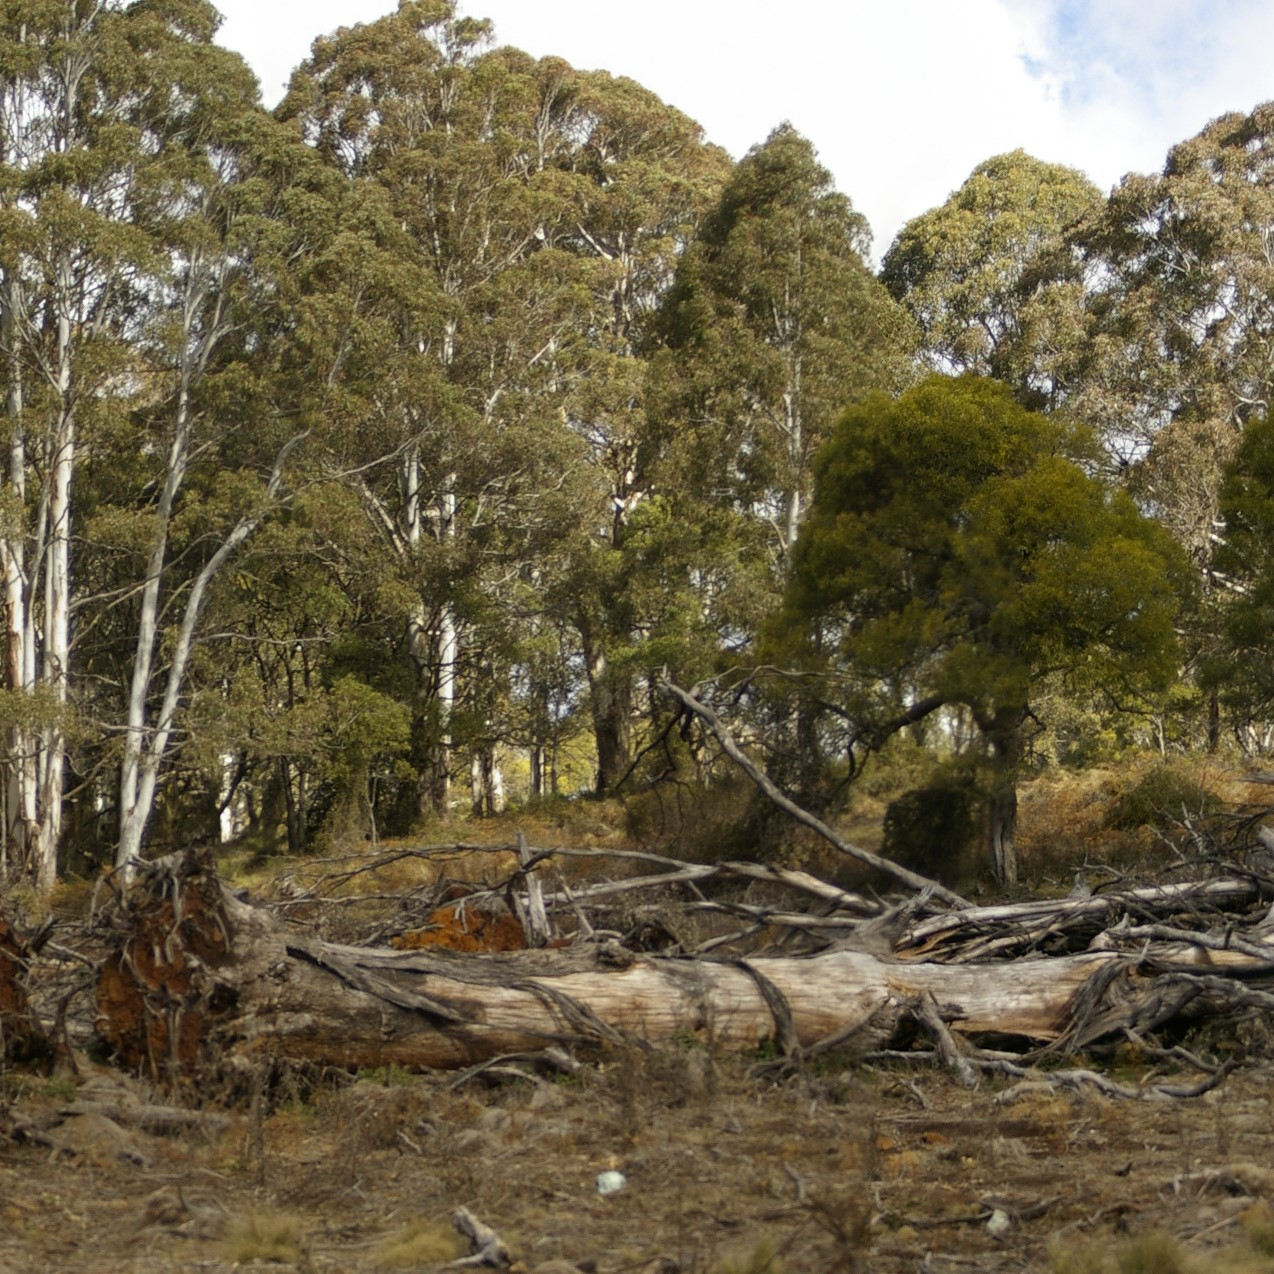 Land clearing should be paused until Government responds to damning Auditor-General report